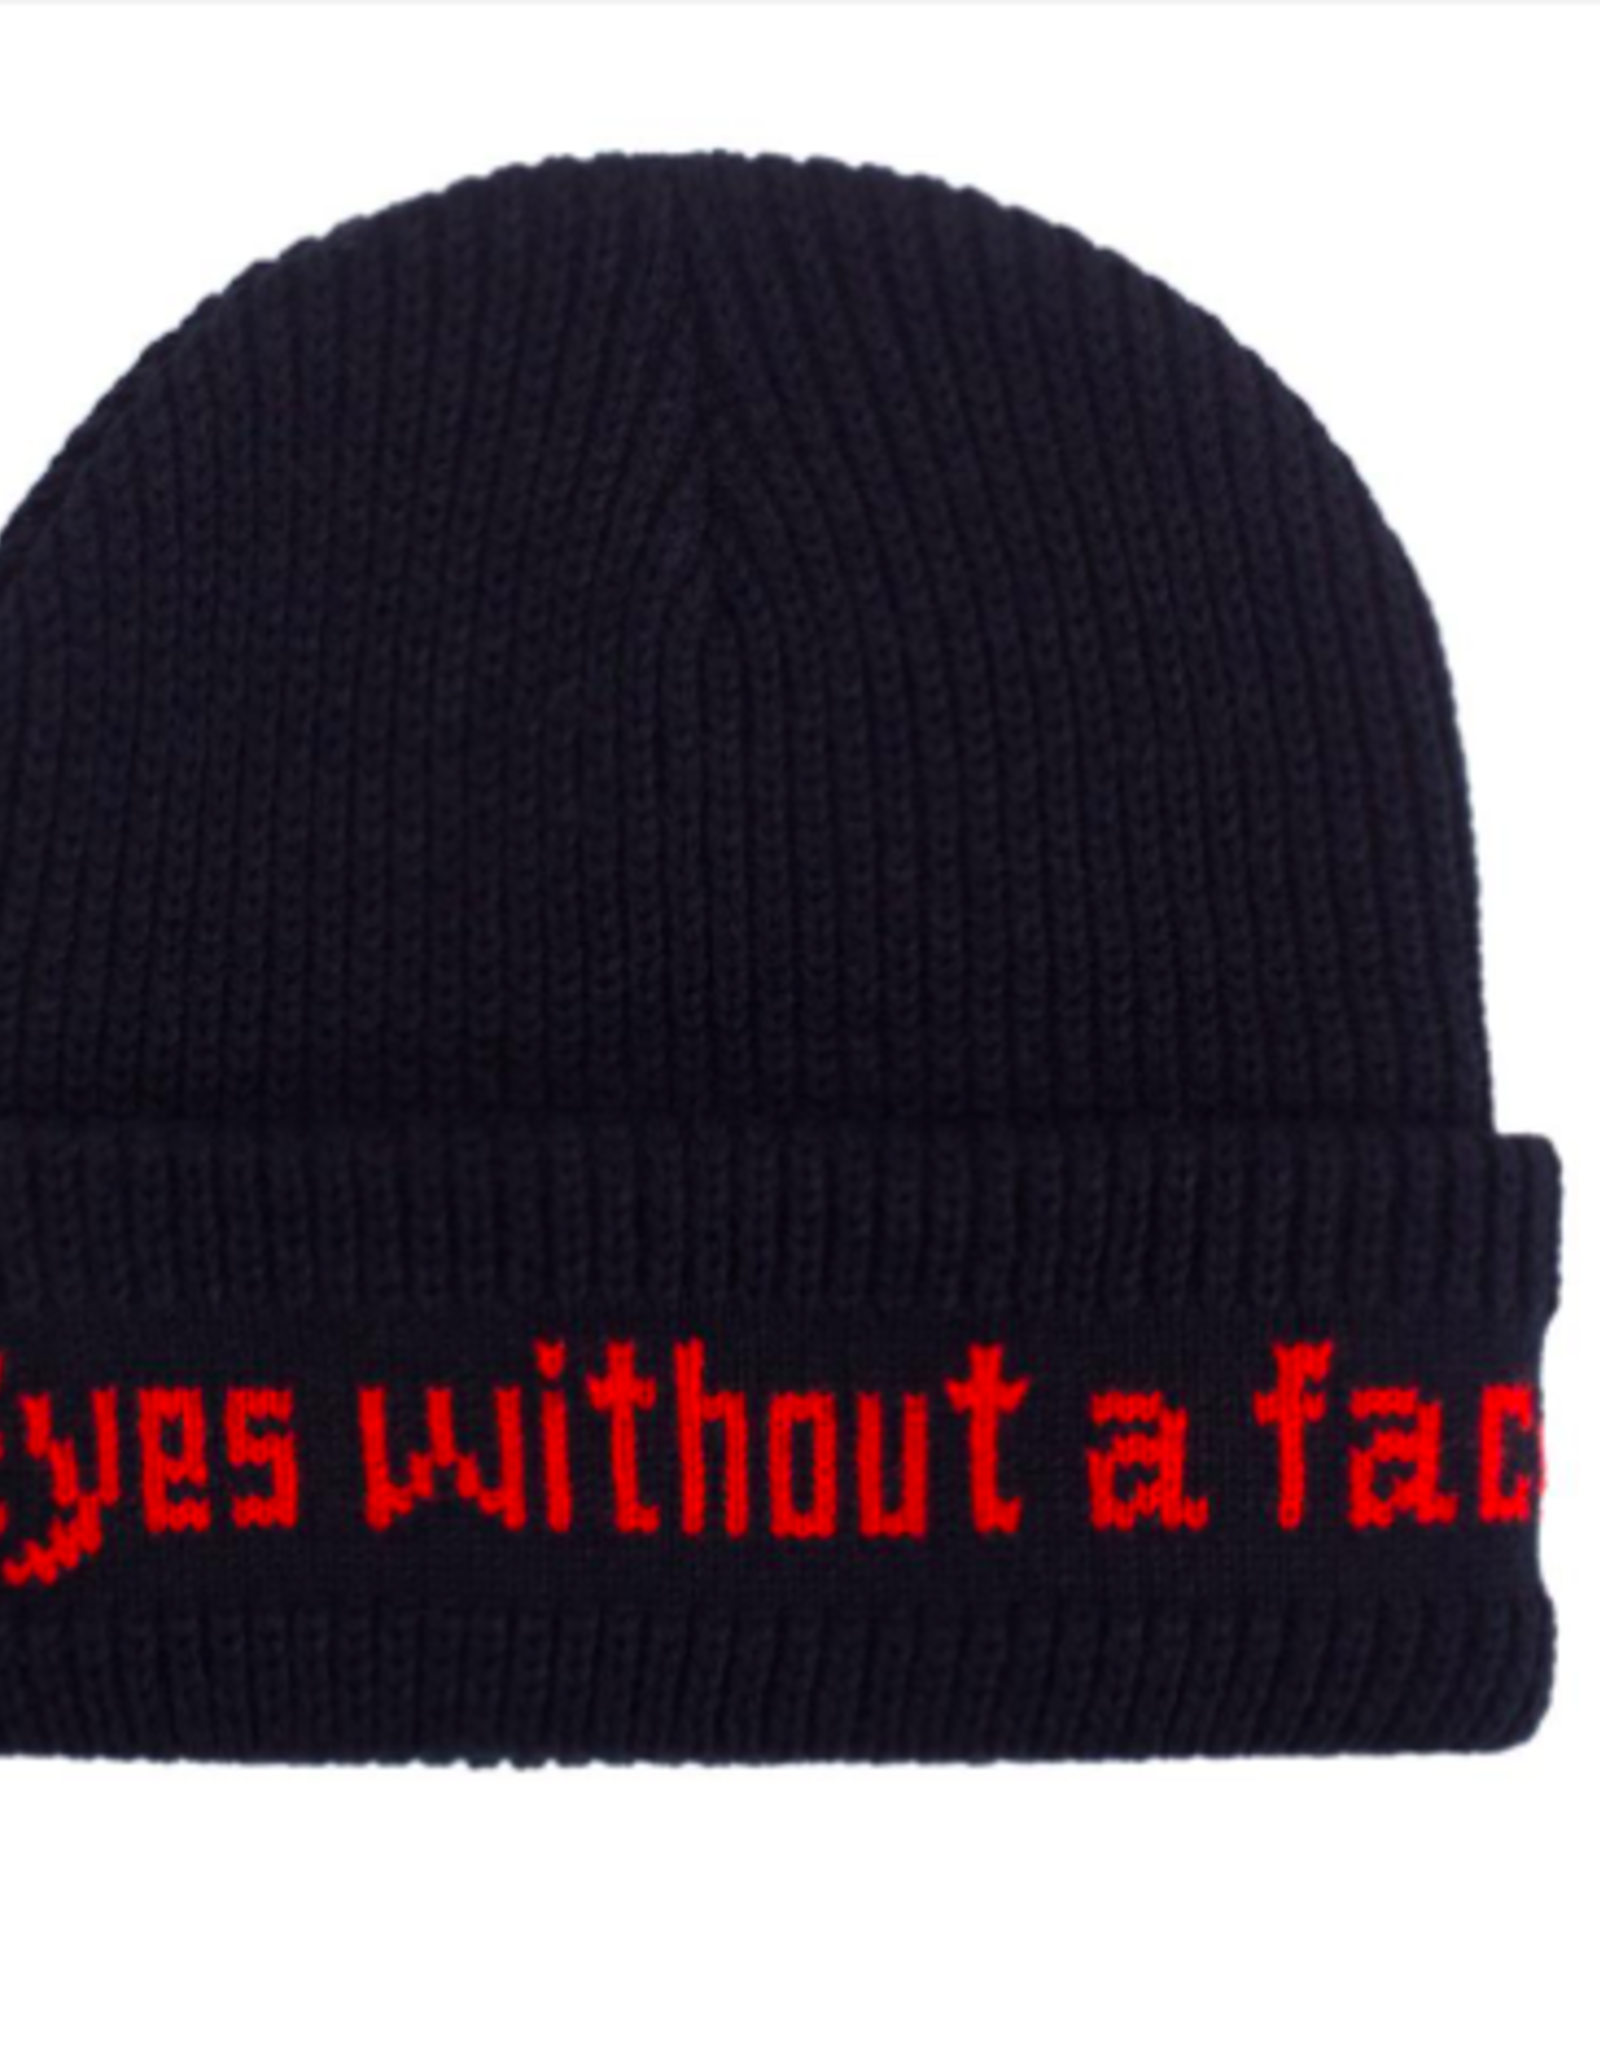 HOCKEY EYES WITHOUT A FACE BEANIE - (ALL COLORS)